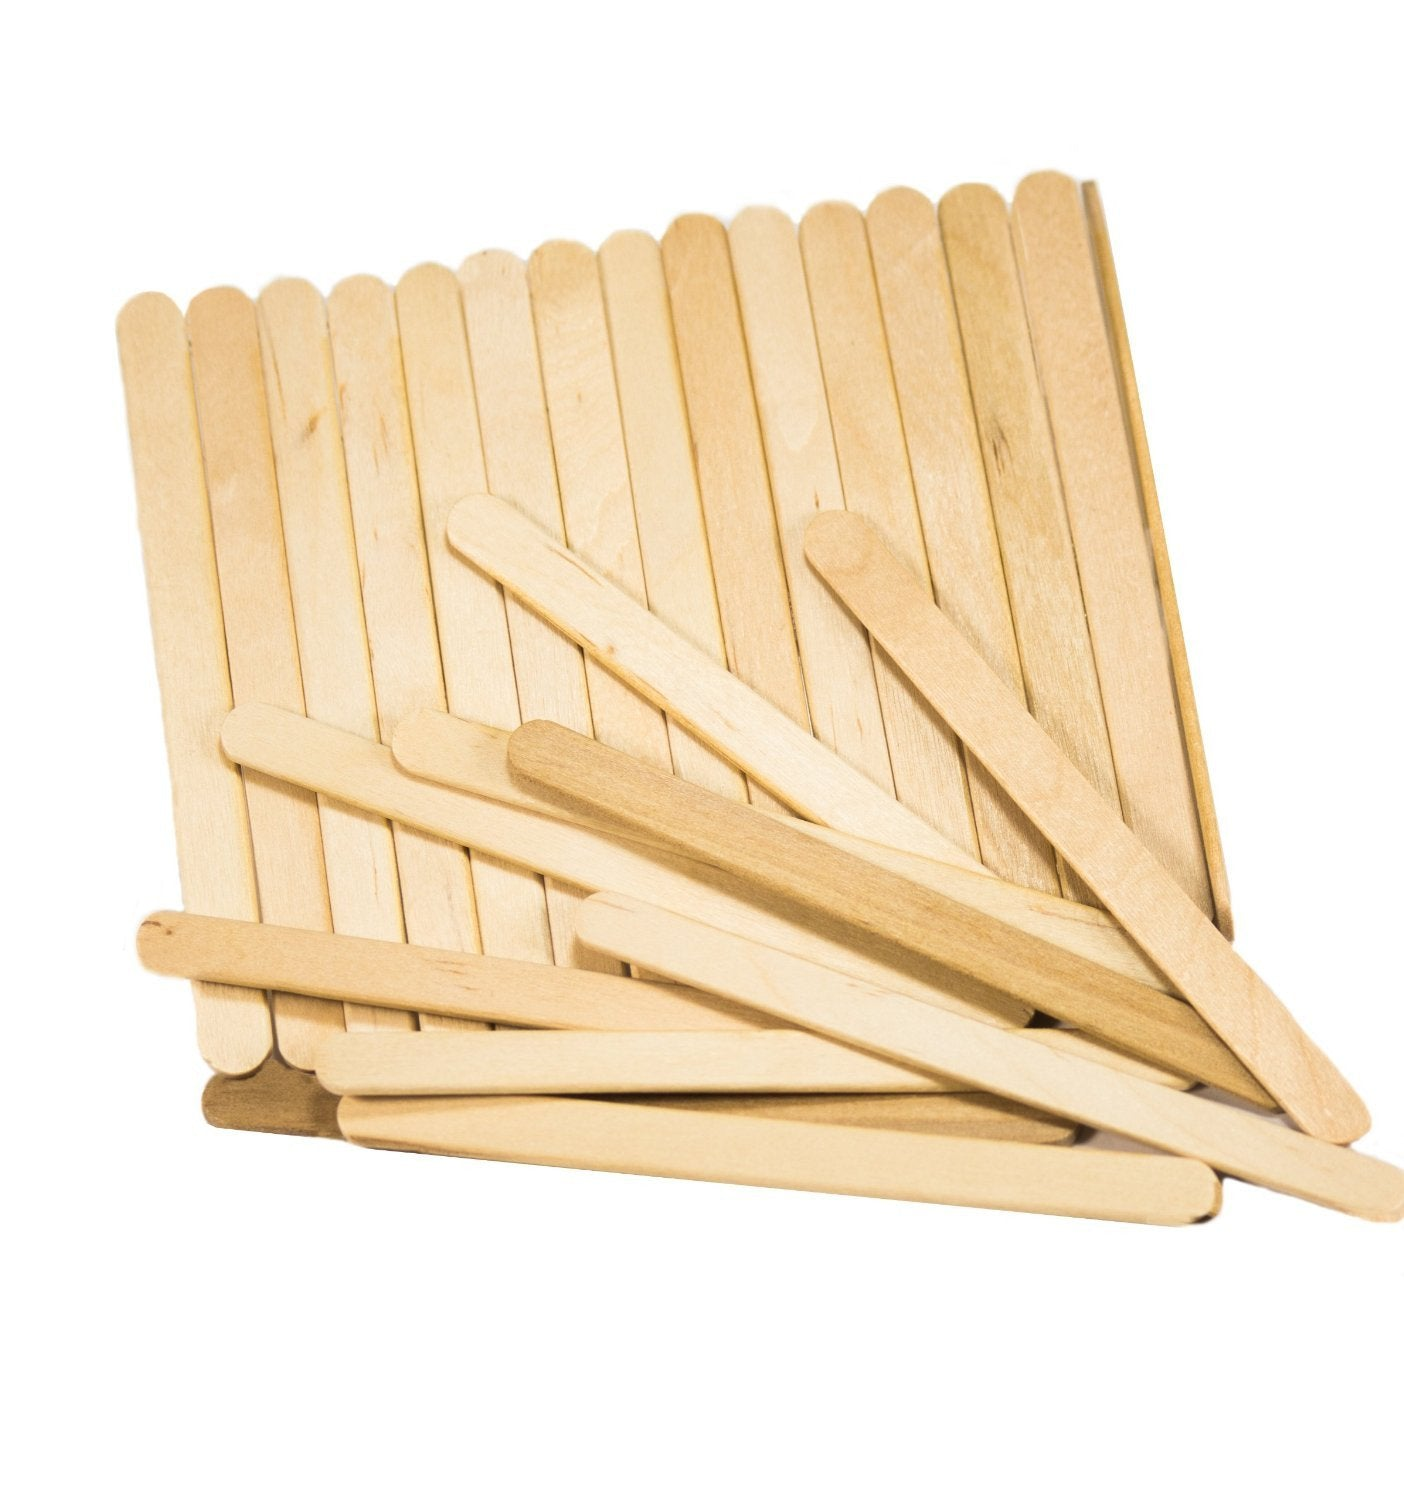 Wooden Ice Pop Stick 50pcs